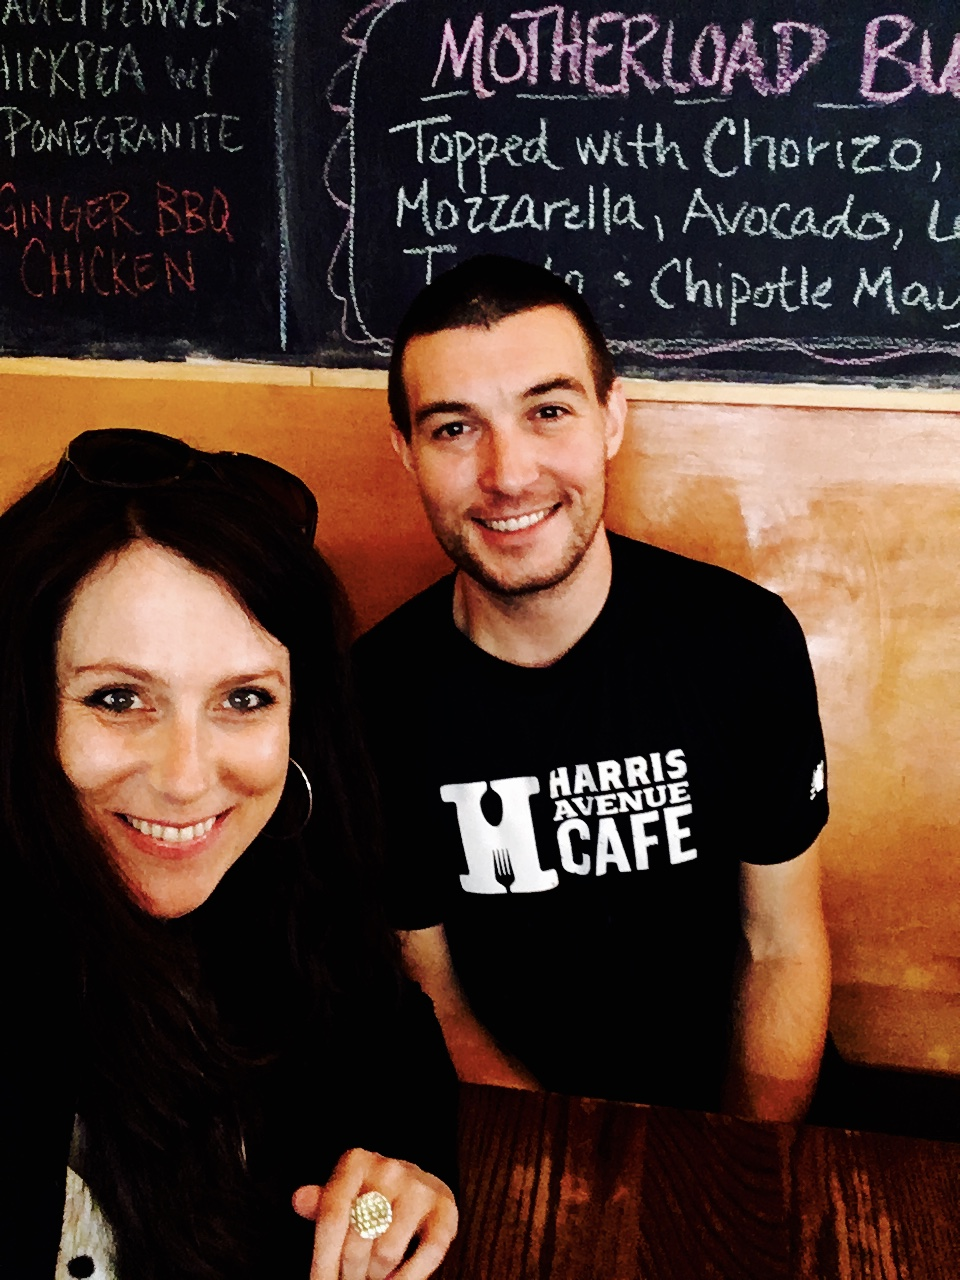 Catherine Witt interviews Harris Ave. Cafe and Tony's Coffee  Owner Nate Breaux in Bellingham WA